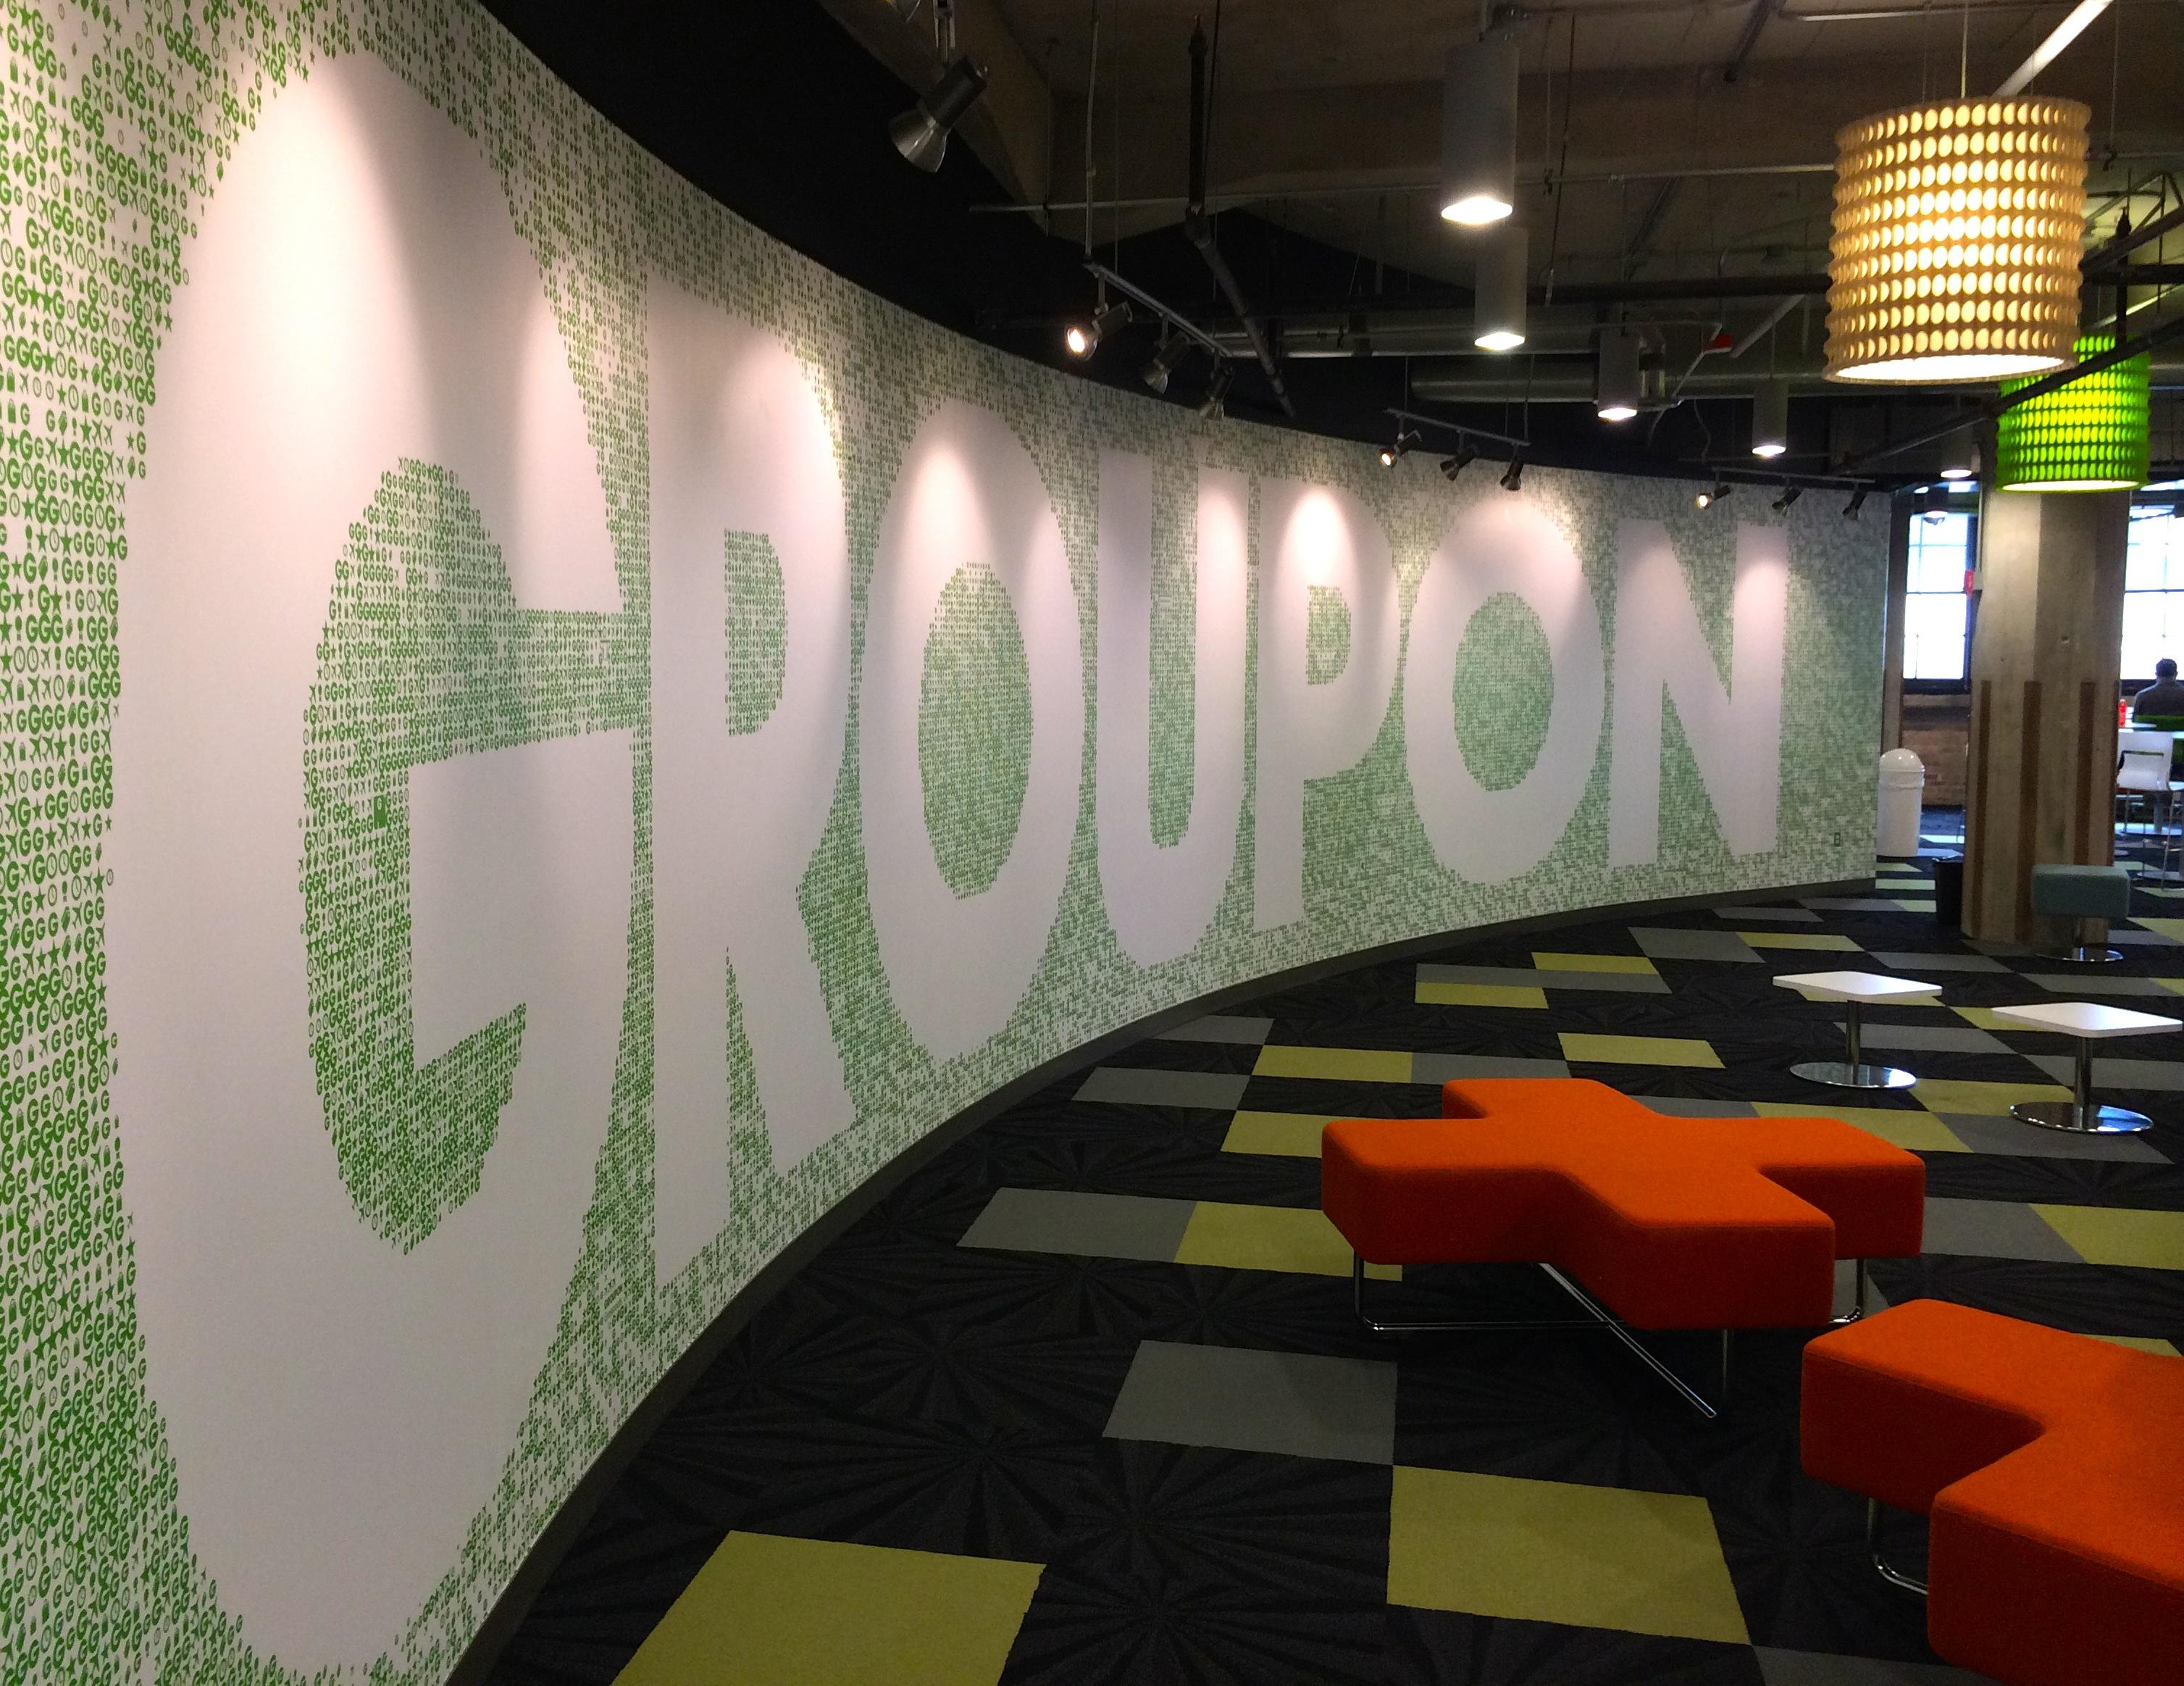 Groupon reveals its Black Friday and Cyber Monday deals